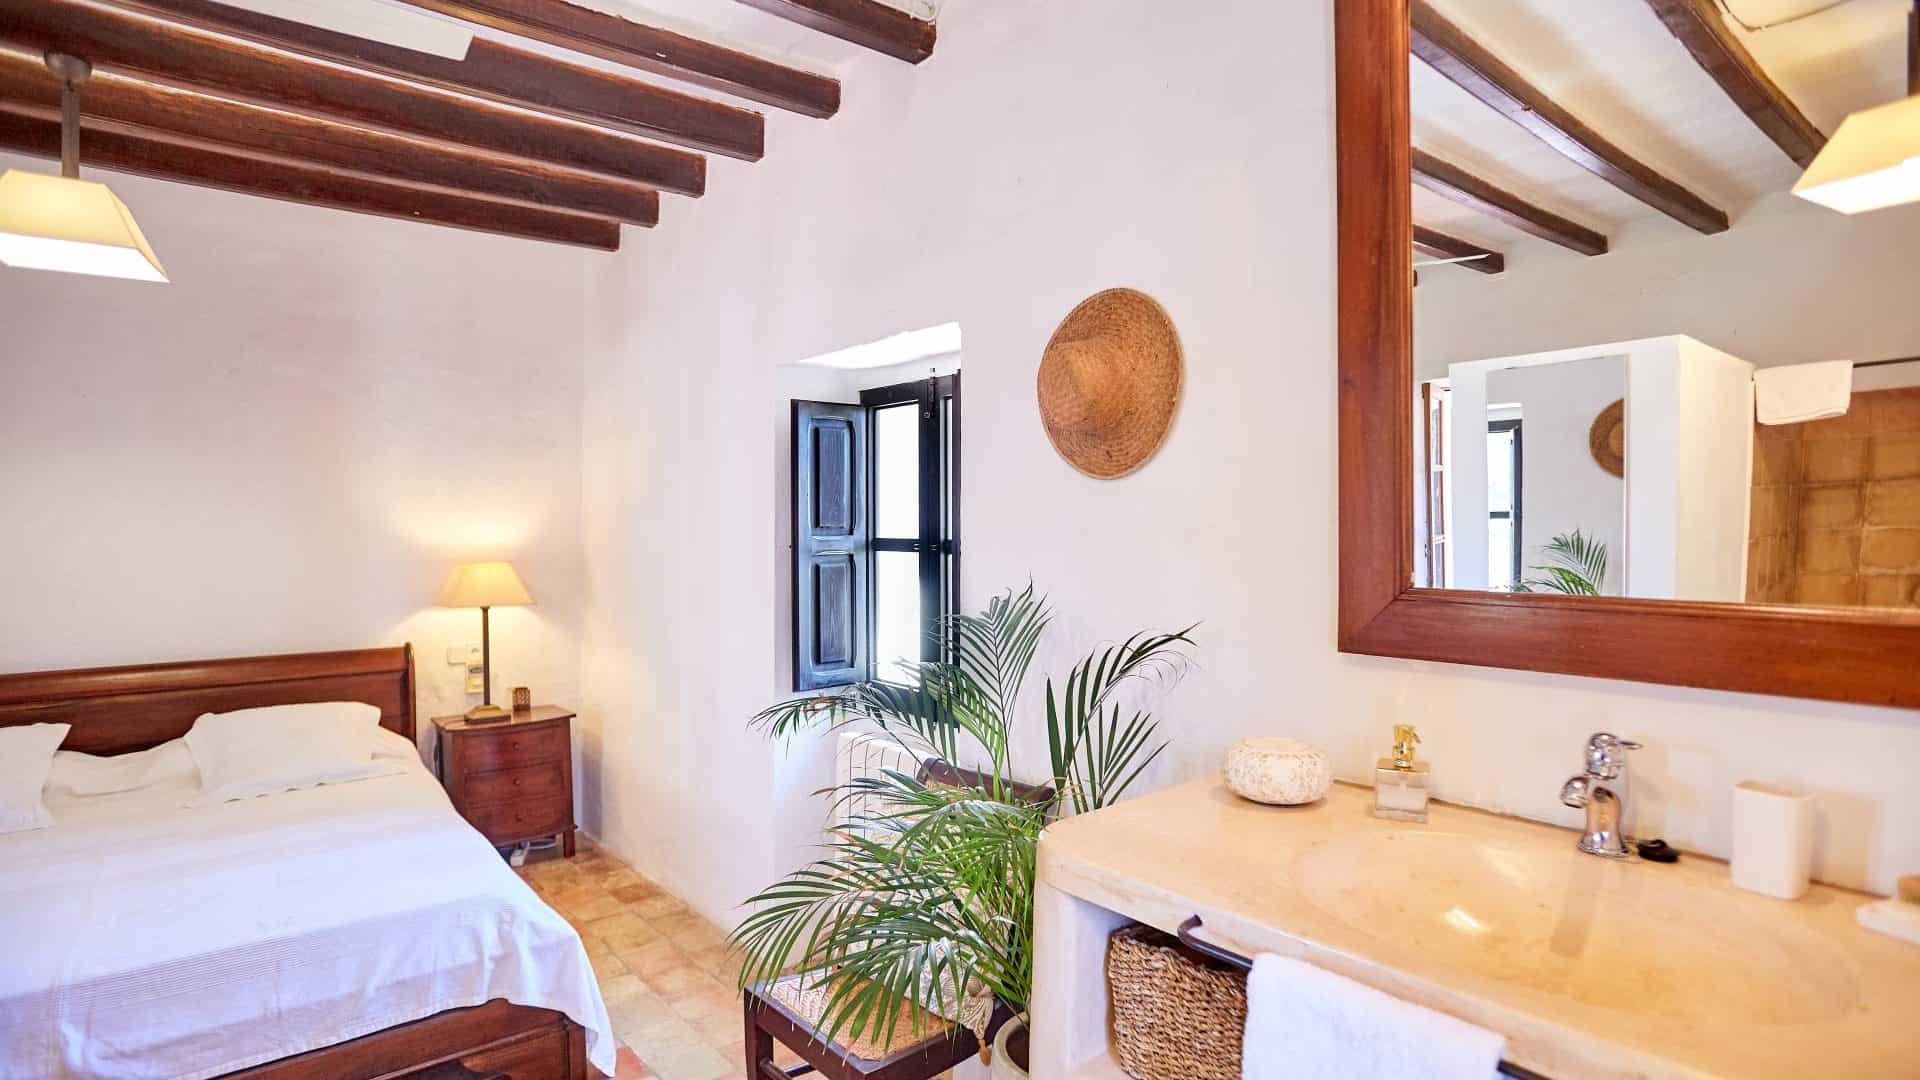 Buy an authentic finca Ibicenca country house